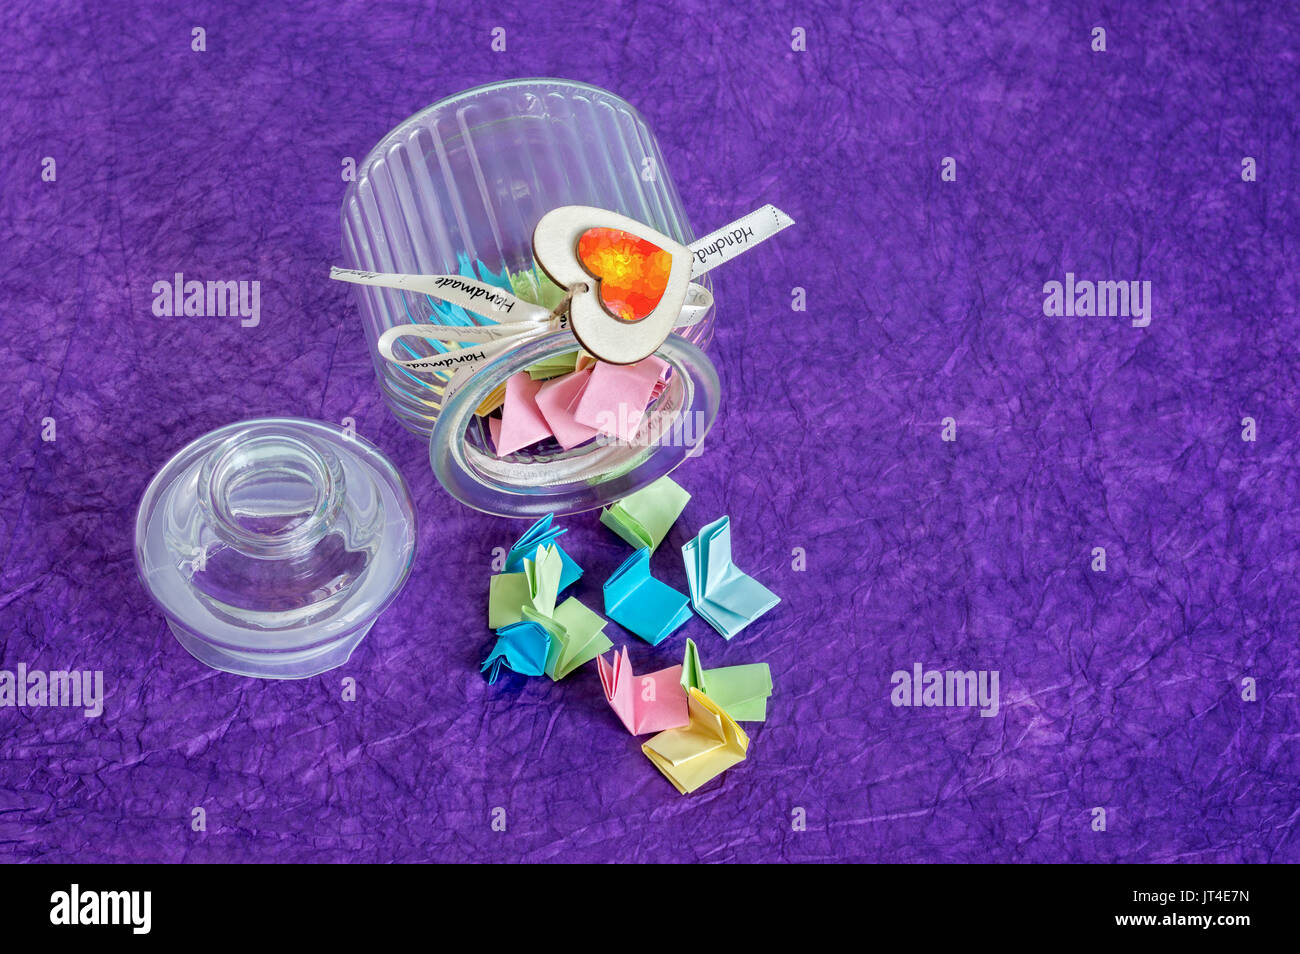 Toppled over glass jar with handmade wooden hearts decorations and ribbon full of colorful folded paper slips. Stock Photo